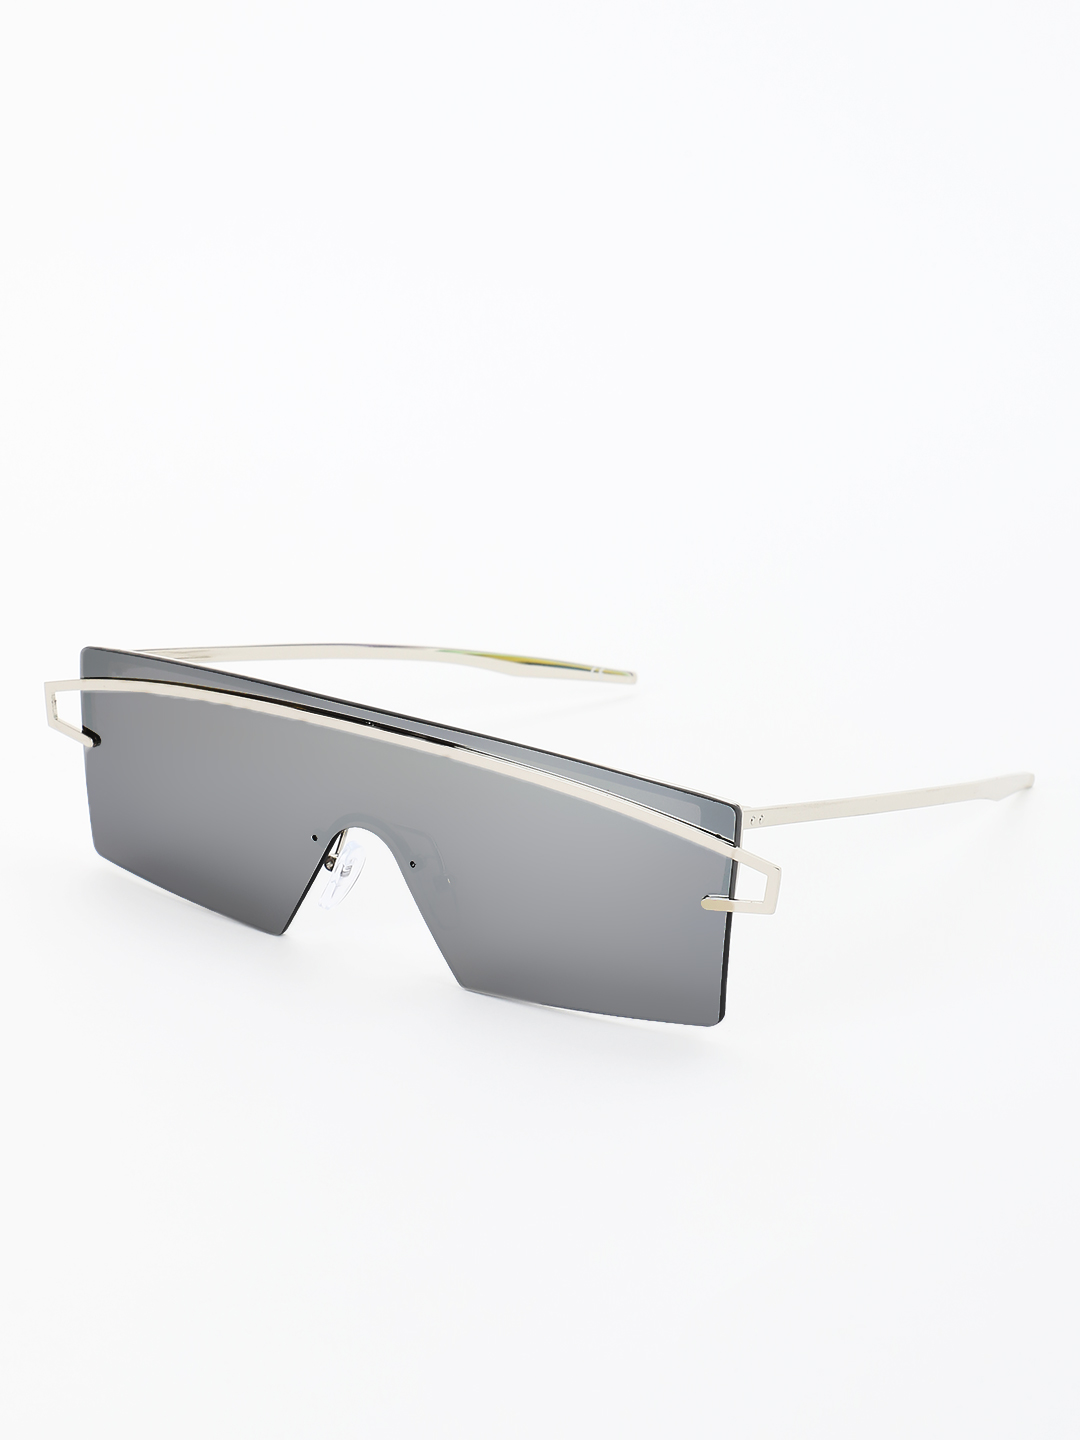 Style Fiesta Grey Coloured Lens Microlab Retro Sunglasses 1